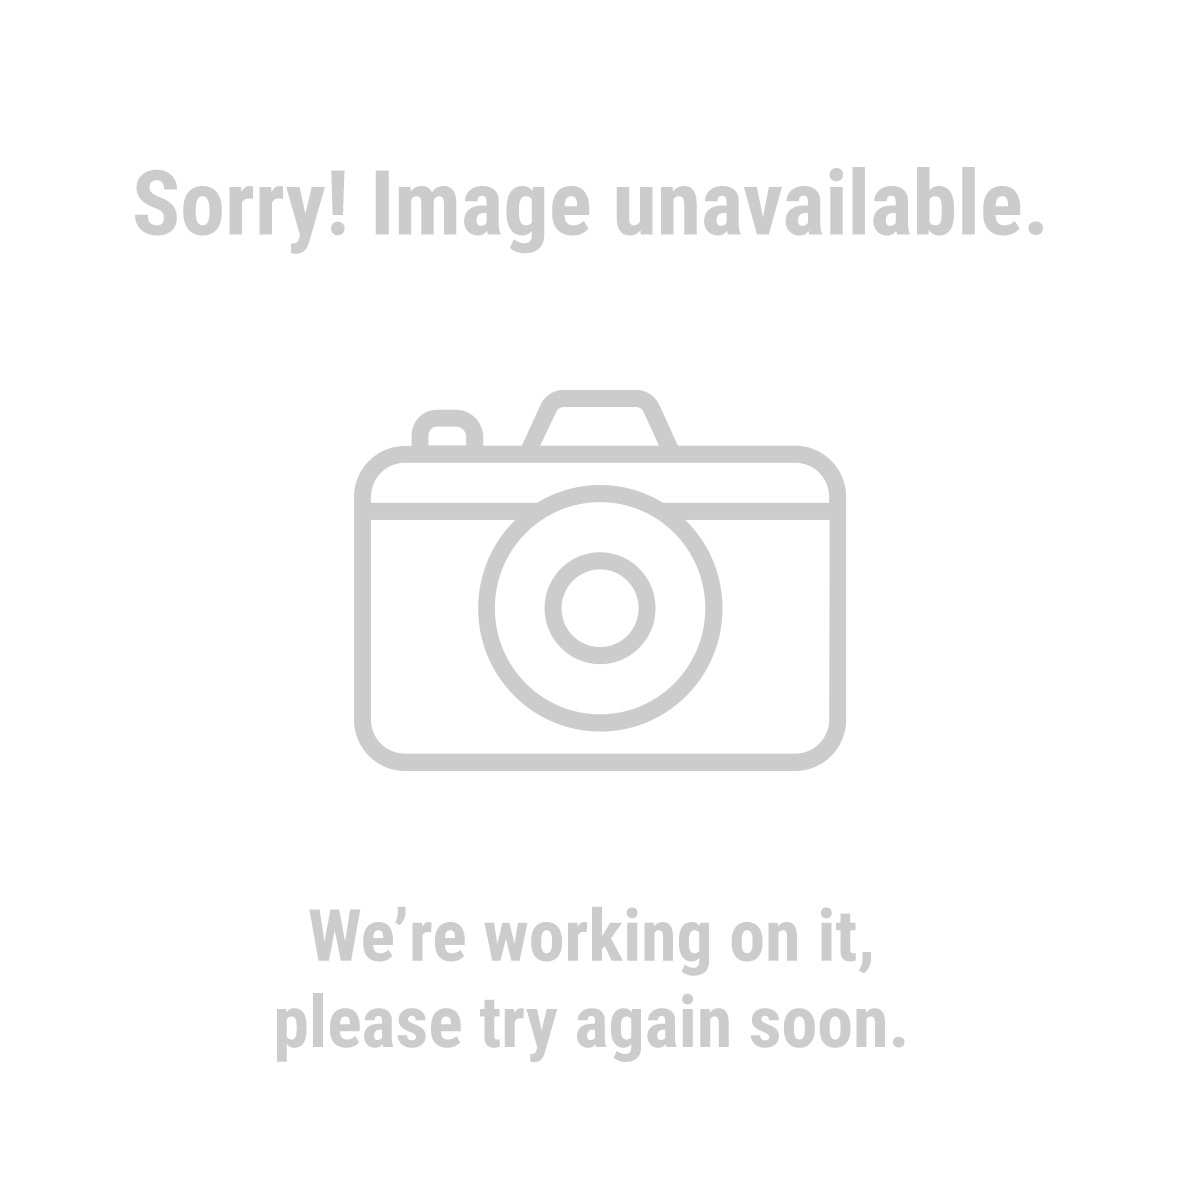 Drill Master 32925 29 Piece High Speed Steel Drill Bit Set